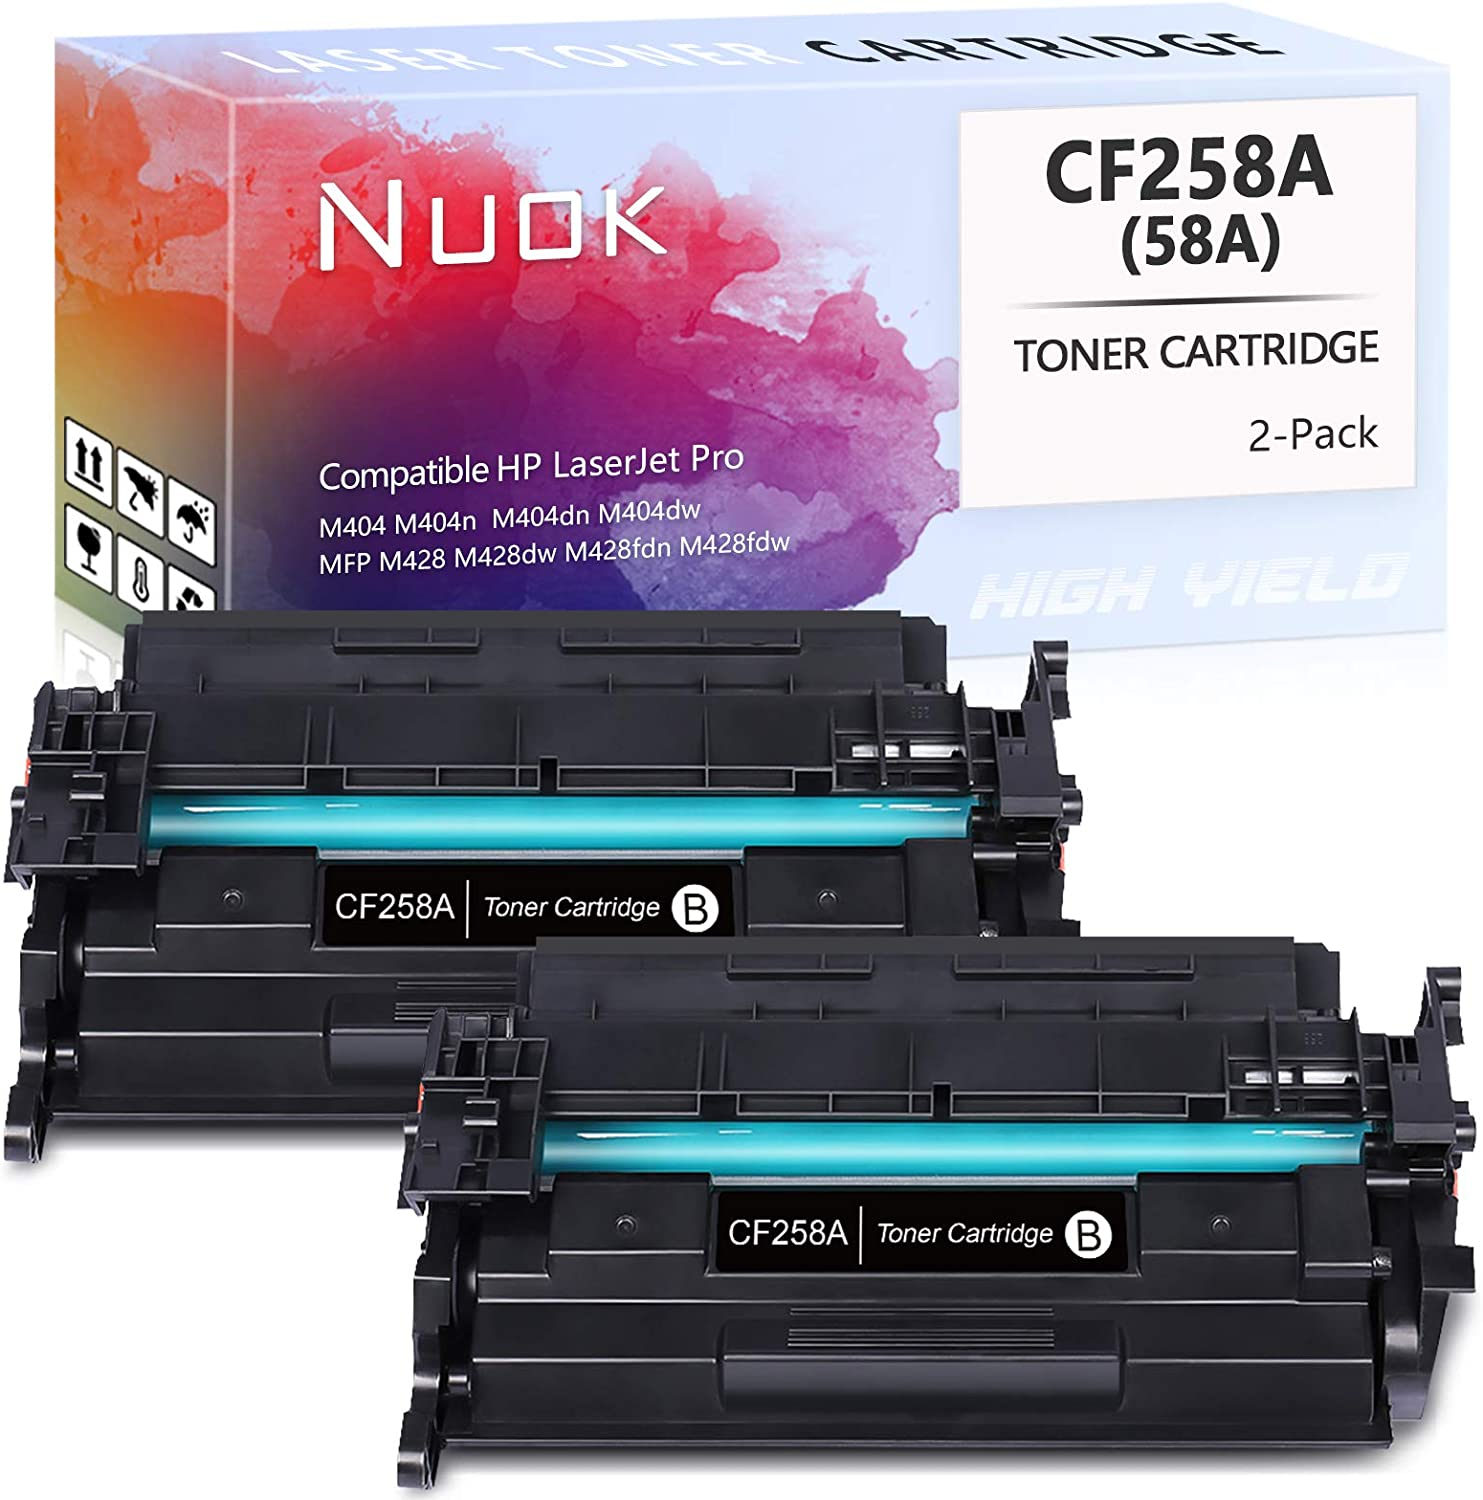 NUOK Compatible Toner Cartridge Replacement for HP 58A CF258A Black Toner Cartridge High Yield for HP LaserJet Pro M404 M404n M404dn M404dw MFP M428 M428dw M428fdn M428fdw Laser Printer, Black, 2-Pack